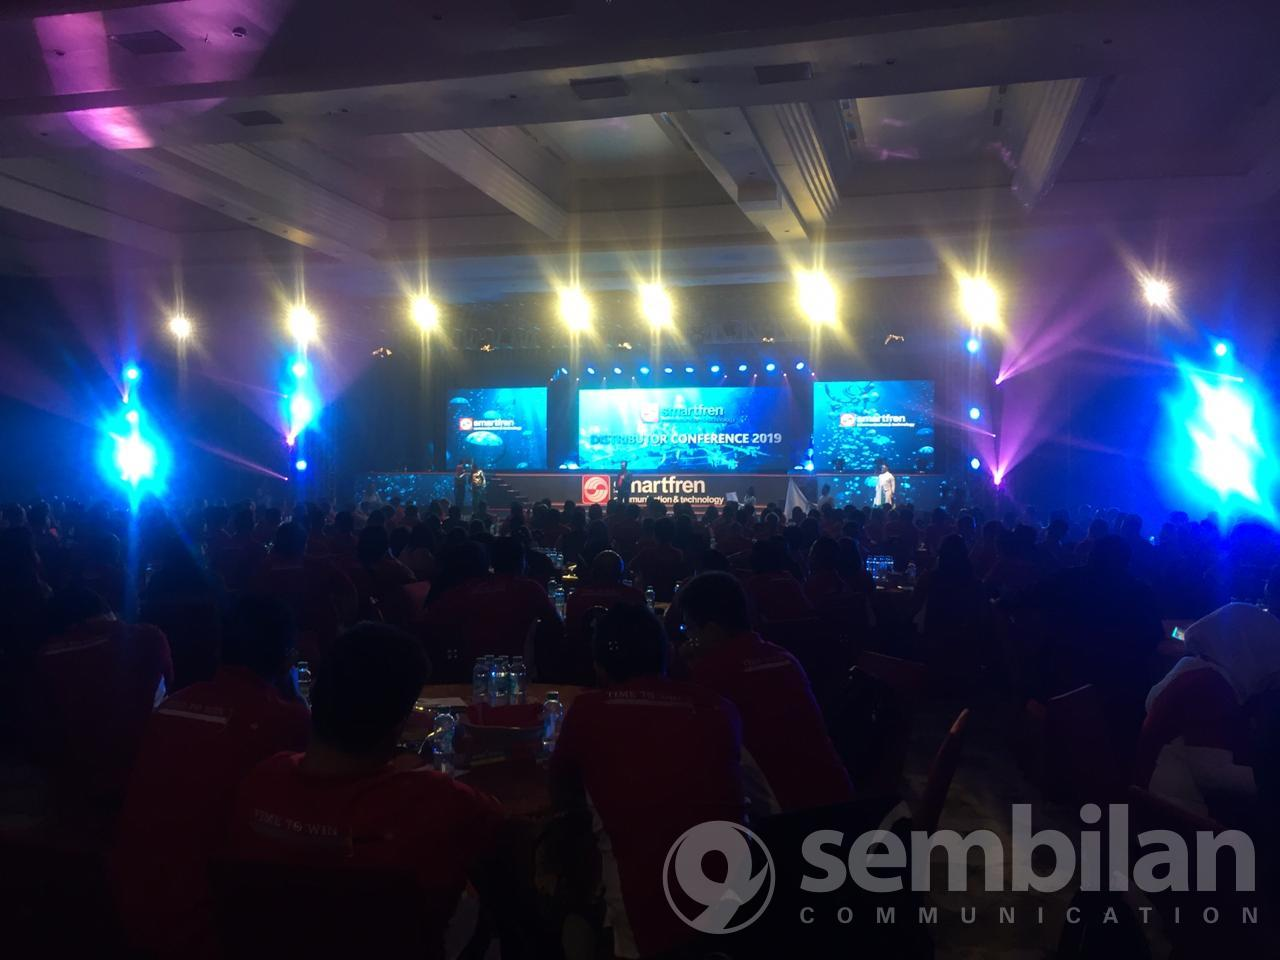 Sembilan Communication Thumbnail Event